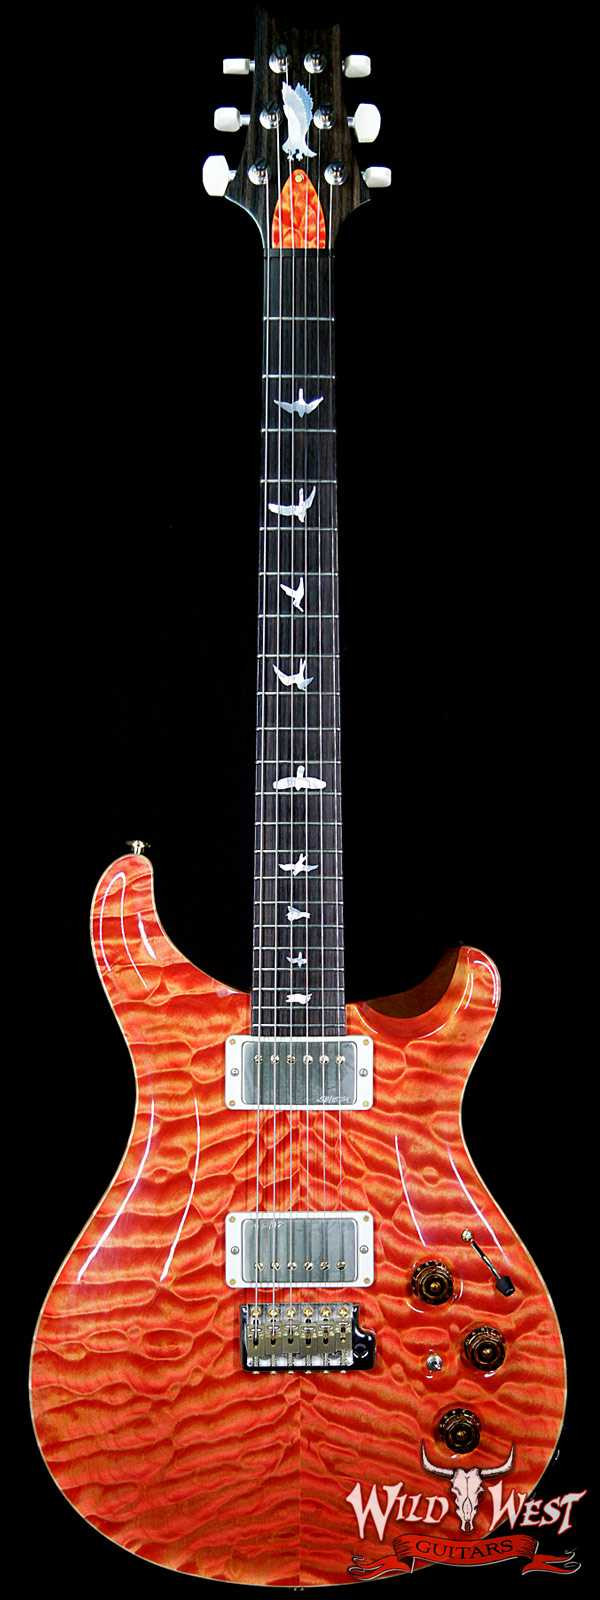 2015 PRS Private Stock # 5675 Custom 22 Piezo P22 Semi-Hollow Quilt Top Macassar Ebony Neck Salmon